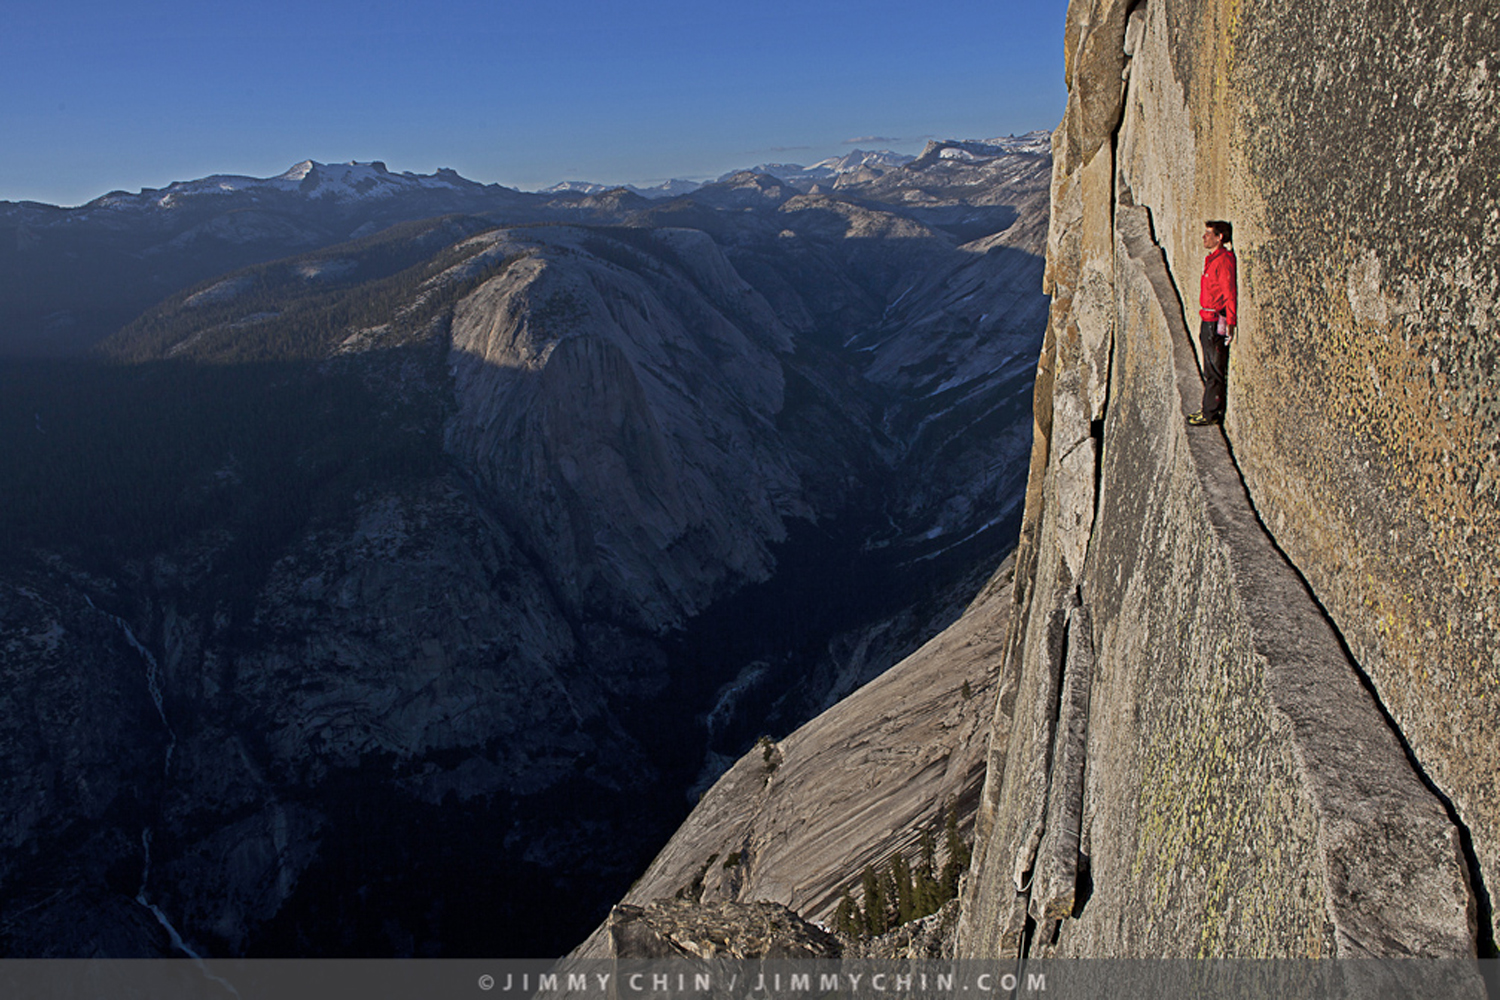 Action Photographer/Filmmaker Jimmy Chin Reaches New Heights (Photos by Jimmy Chin)